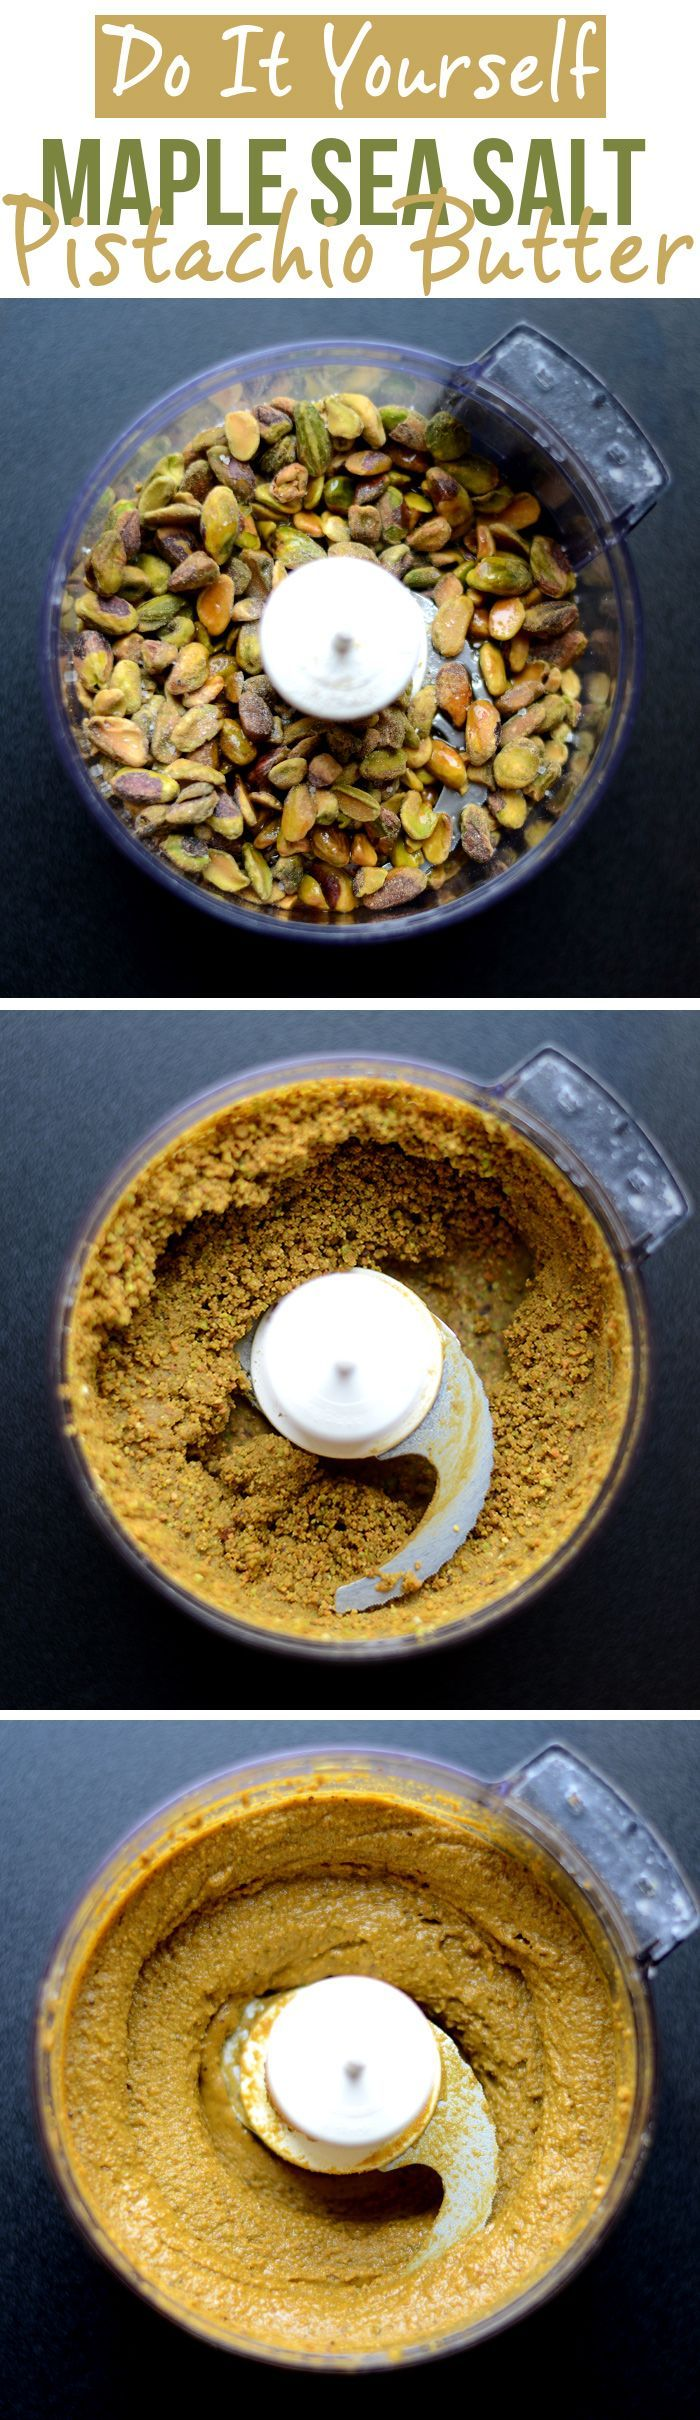 DIY Maple Sea Salt Pistachio Butter! I love love LOVE pistachios so I deffo have to try this